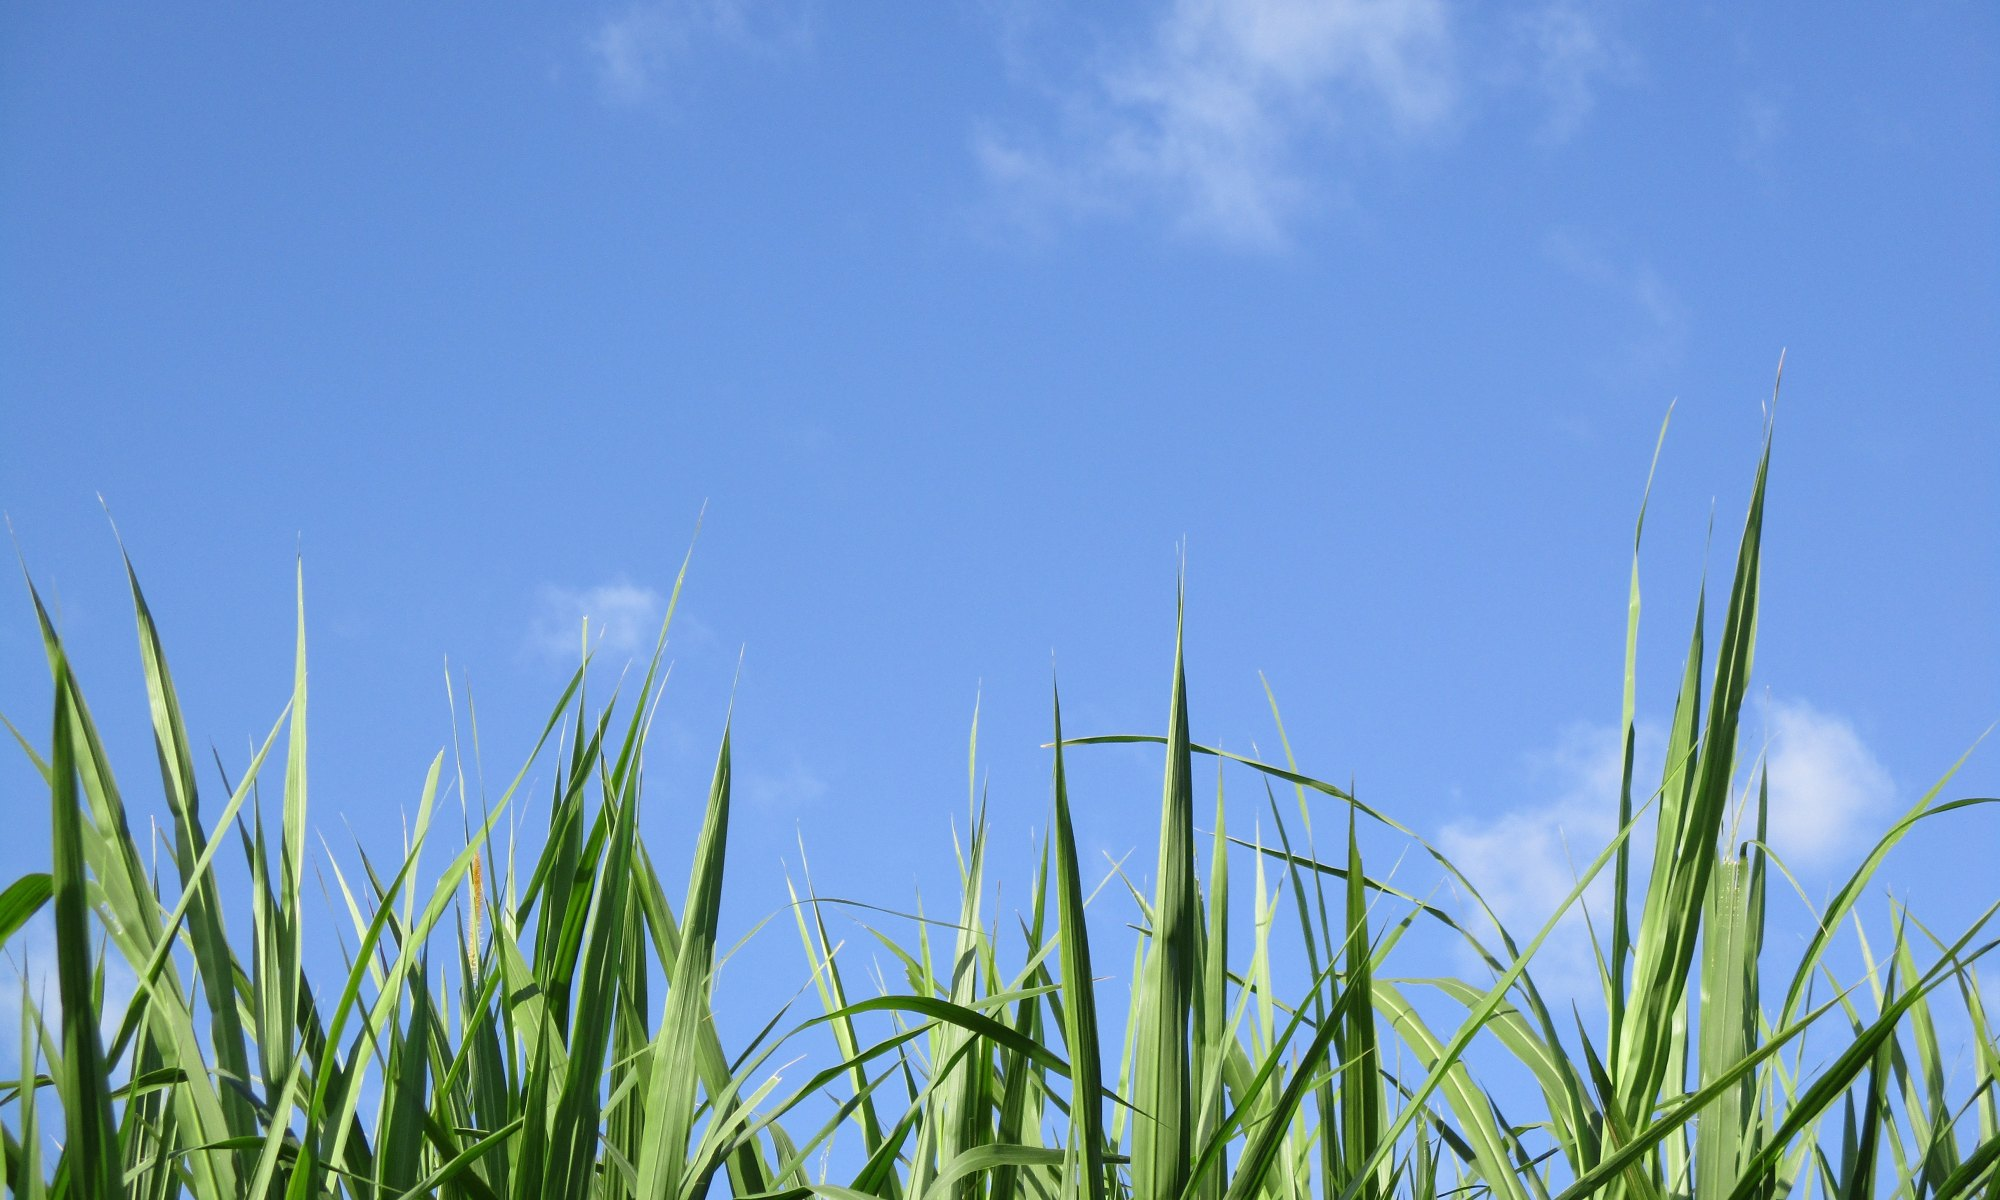 Viewing the blue sky during daytime from grass level